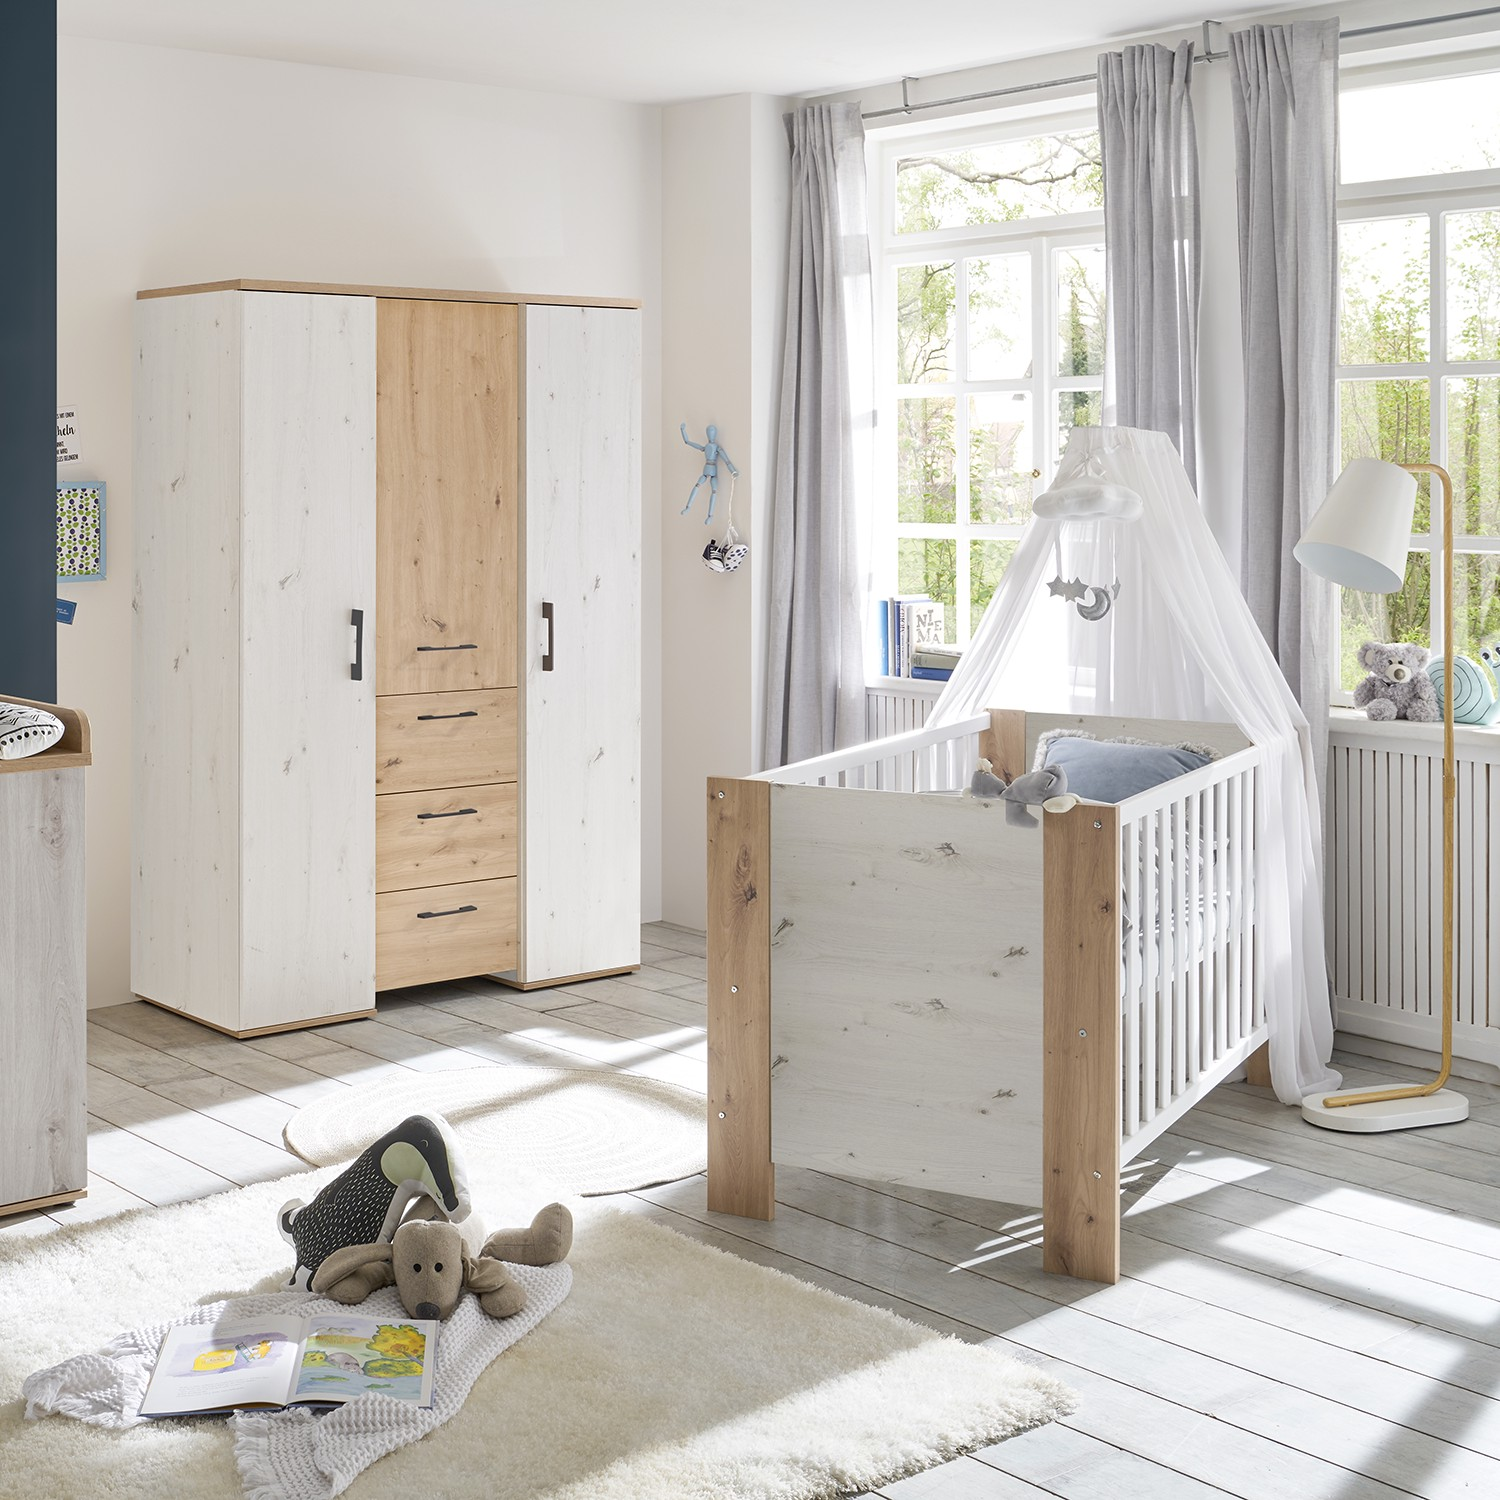 Home24 Babybed Micha, Kids Club Collection